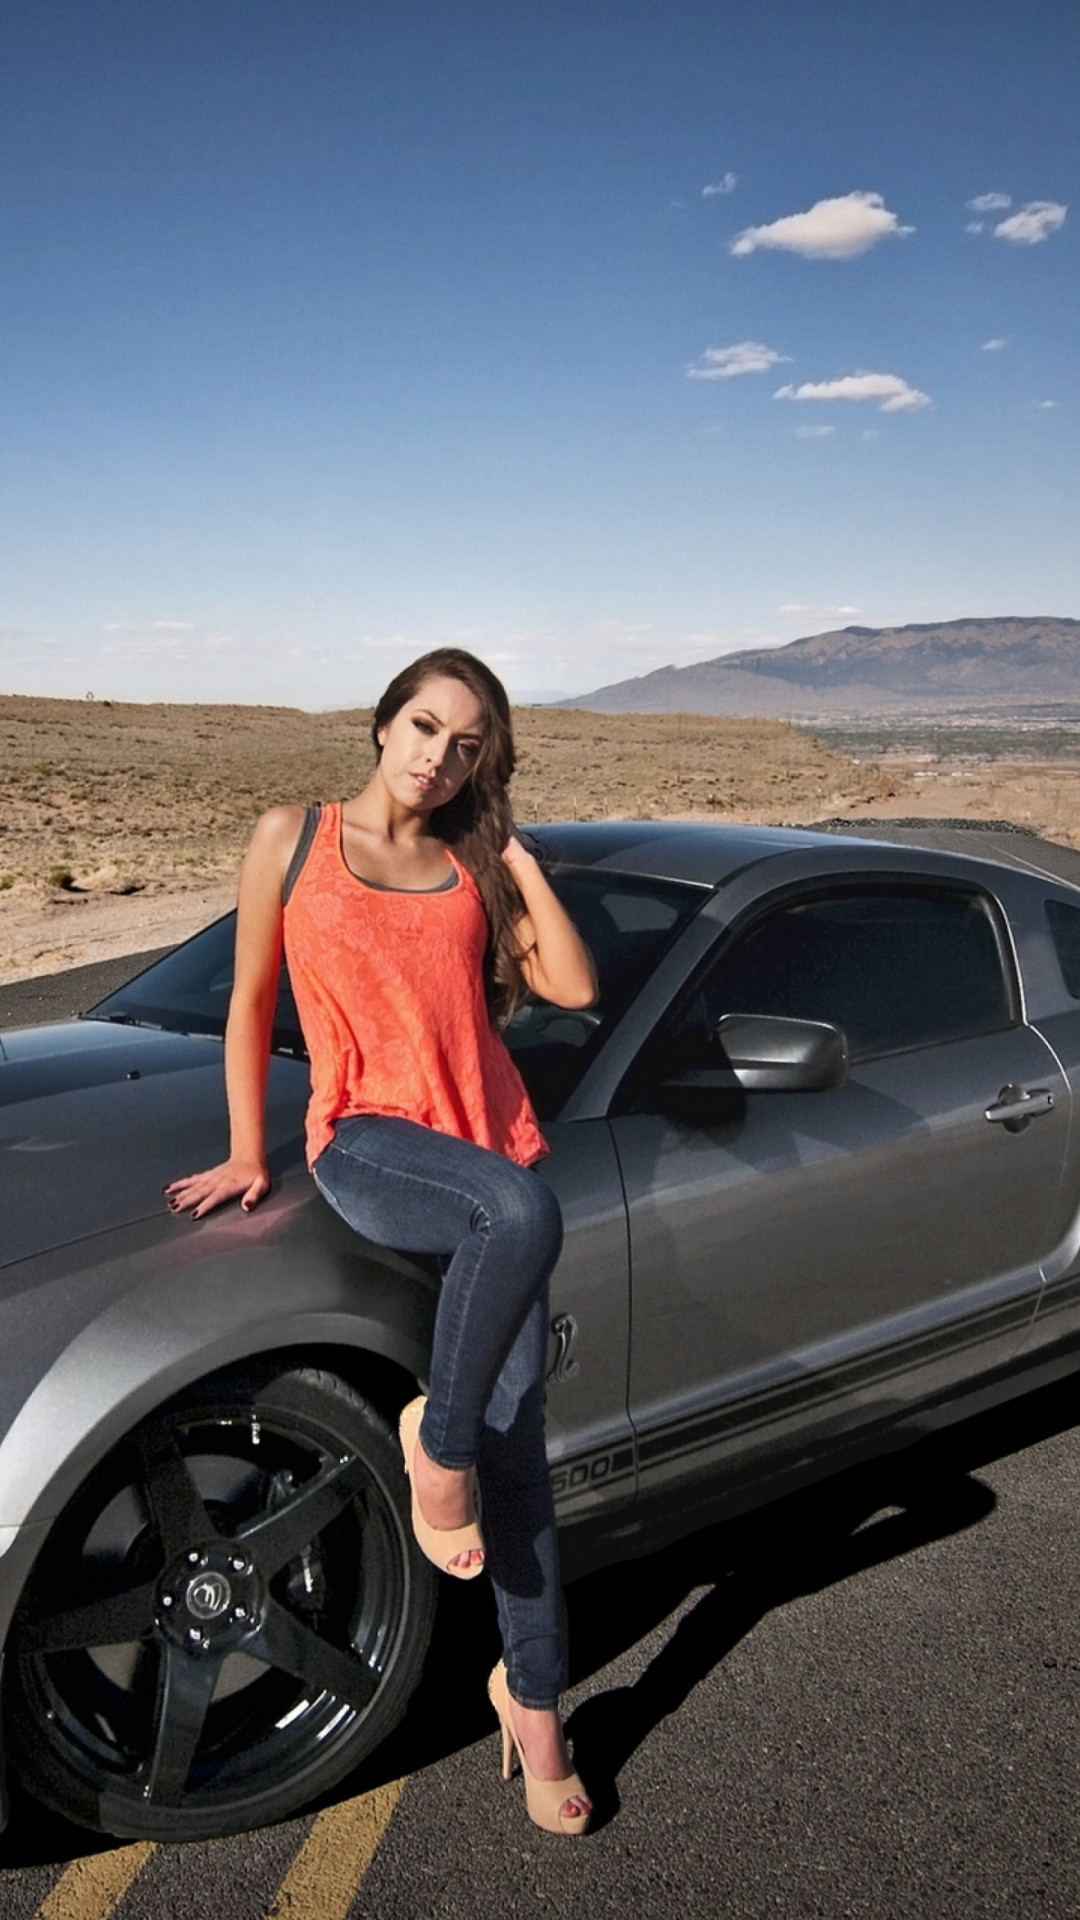 Download hot girl sitting on ford mustang